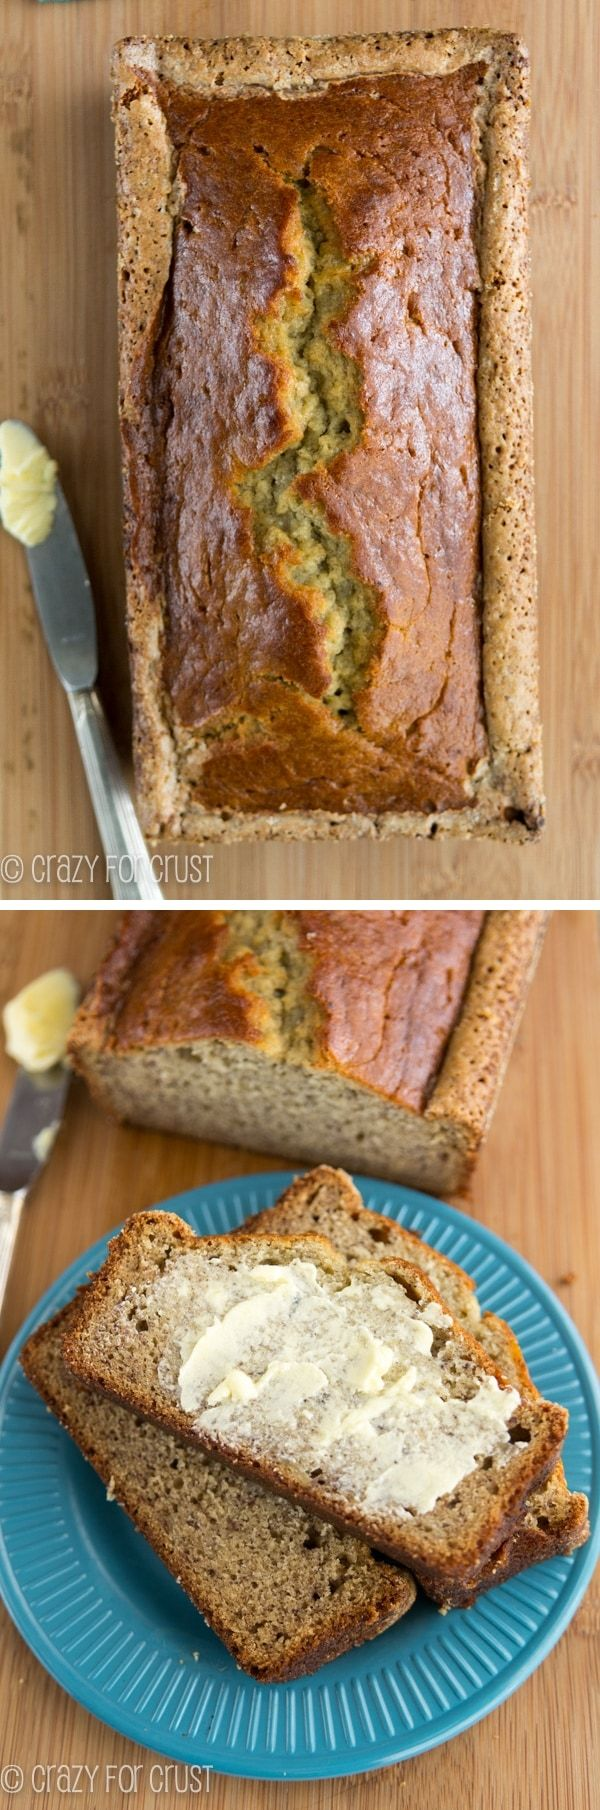 Moms banana bread crazyforcrust the perfect banana bread moms banana bread crazyforcrust the perfect banana bread recipe straight from my mom to you forumfinder Choice Image